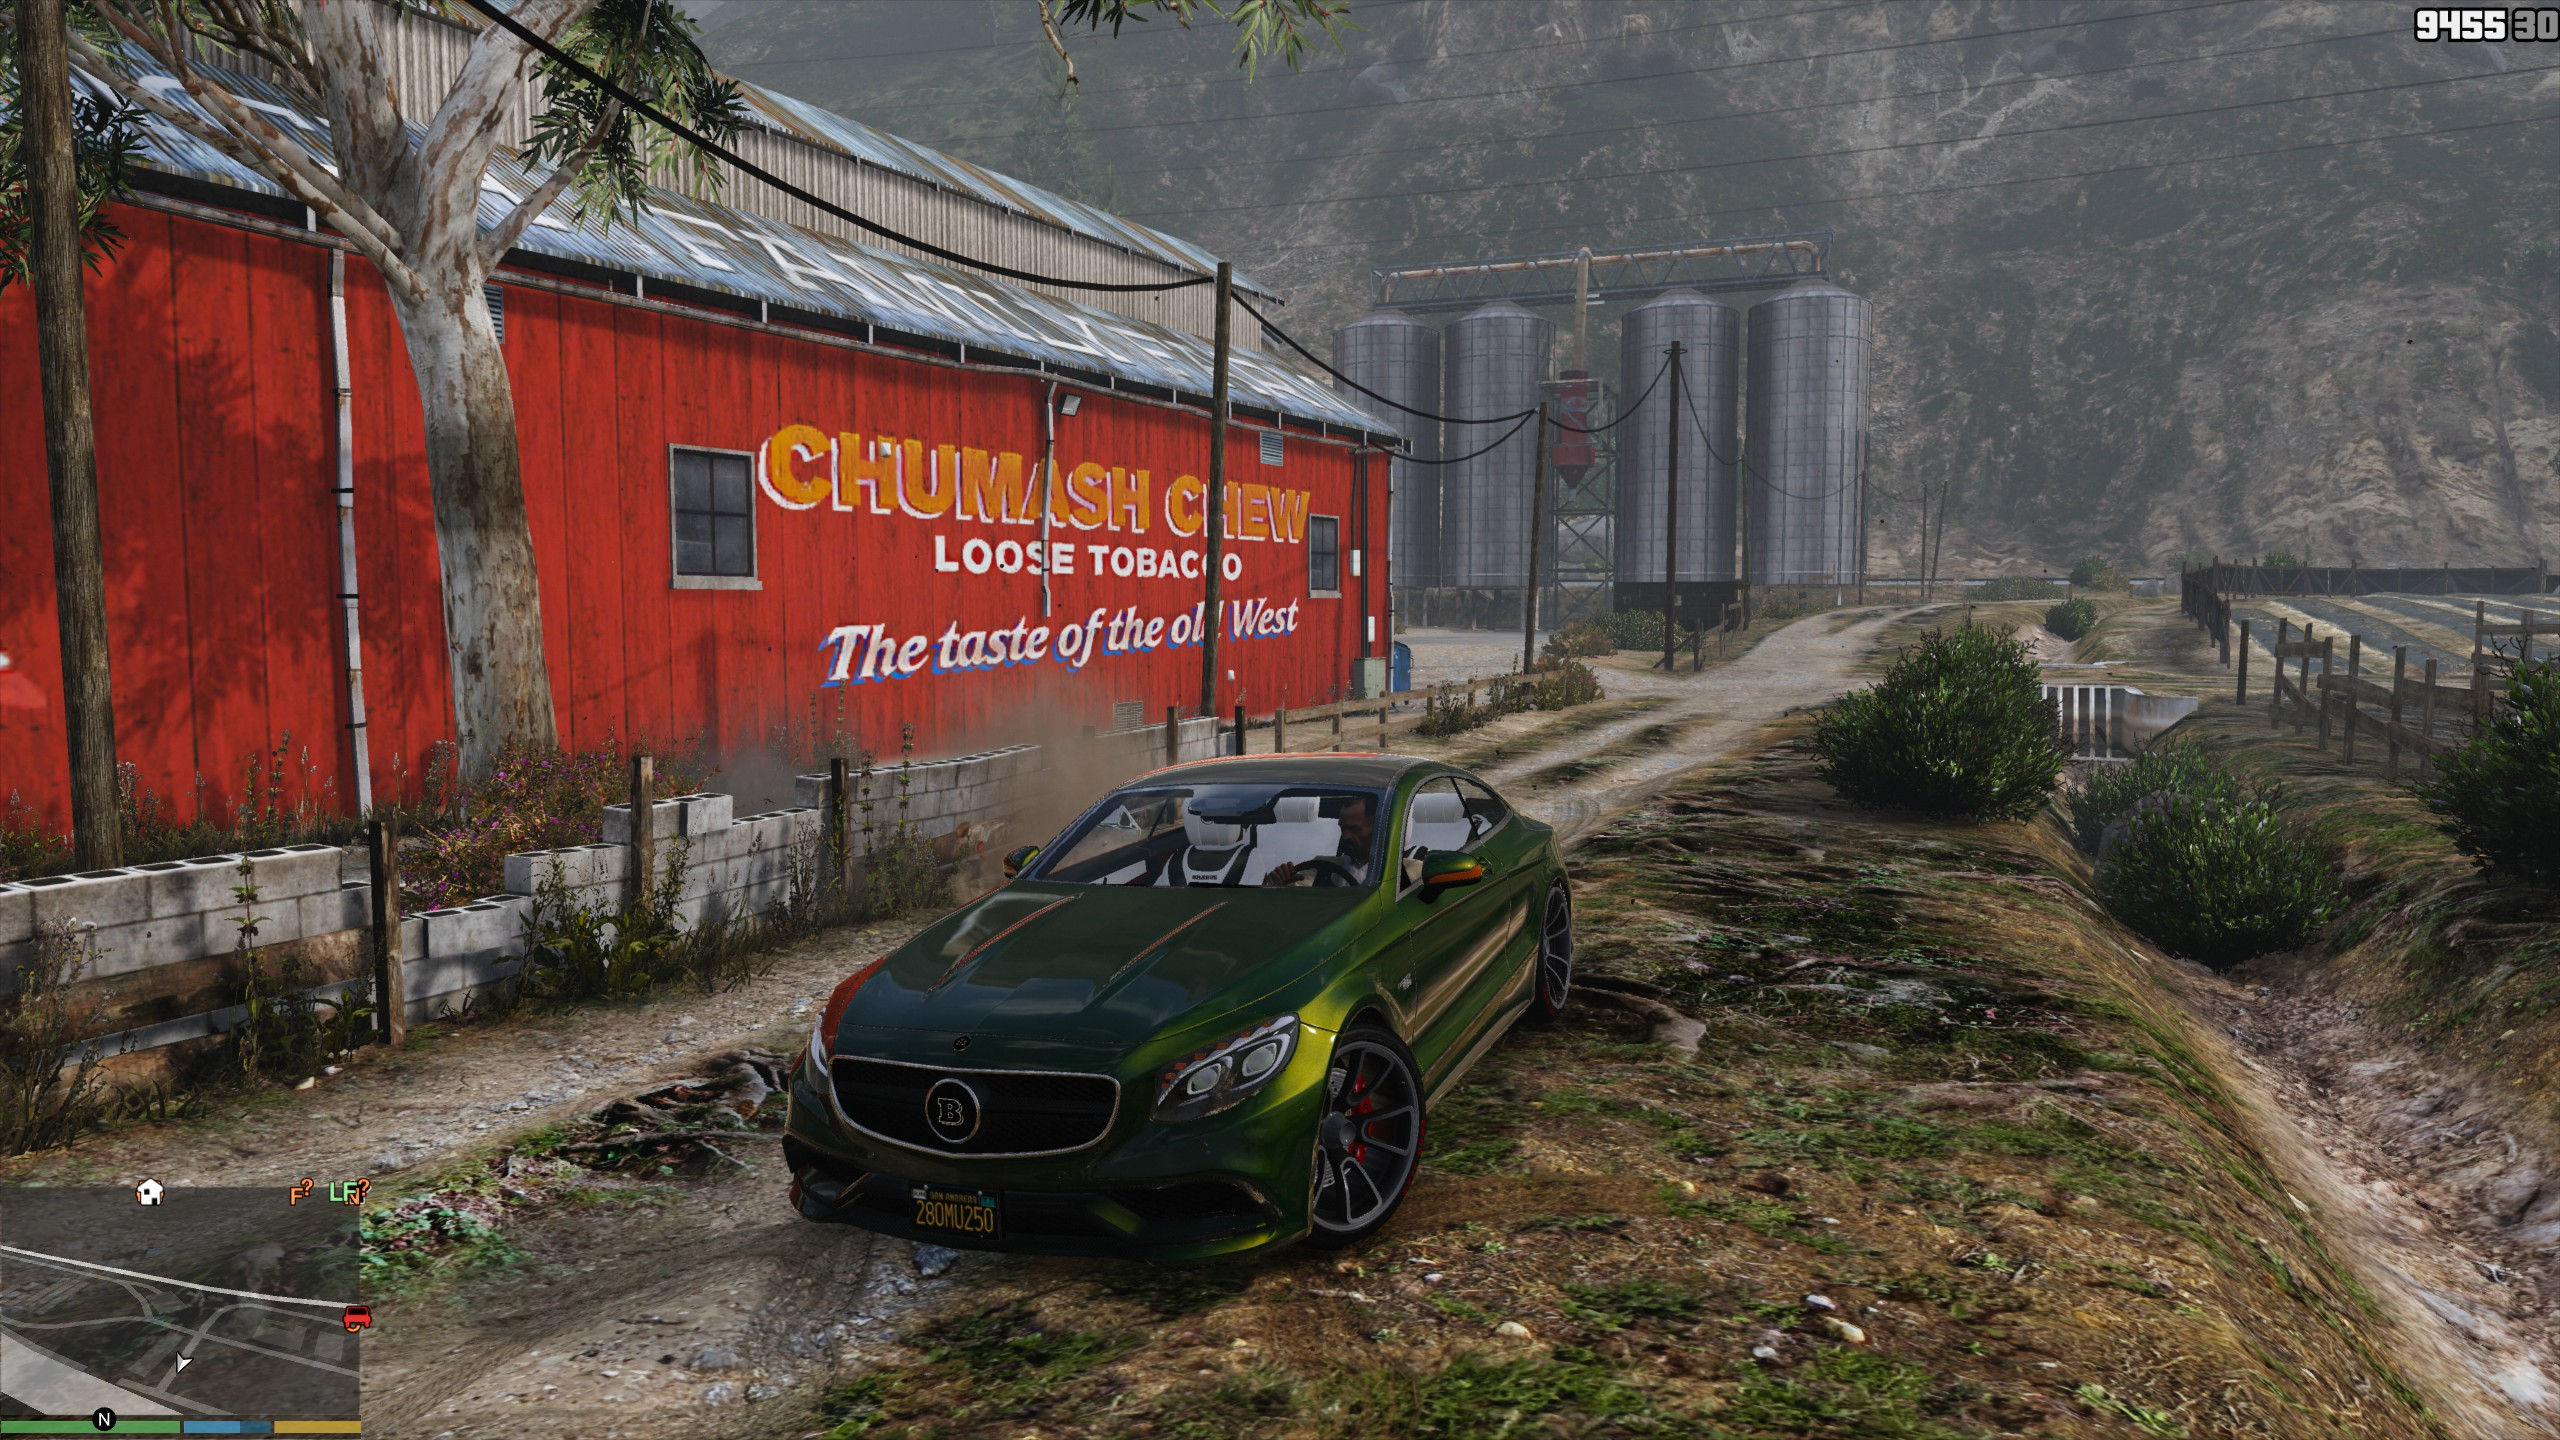 Steam Community :: Guide :: How to mod GTAV  Includes: Graphics